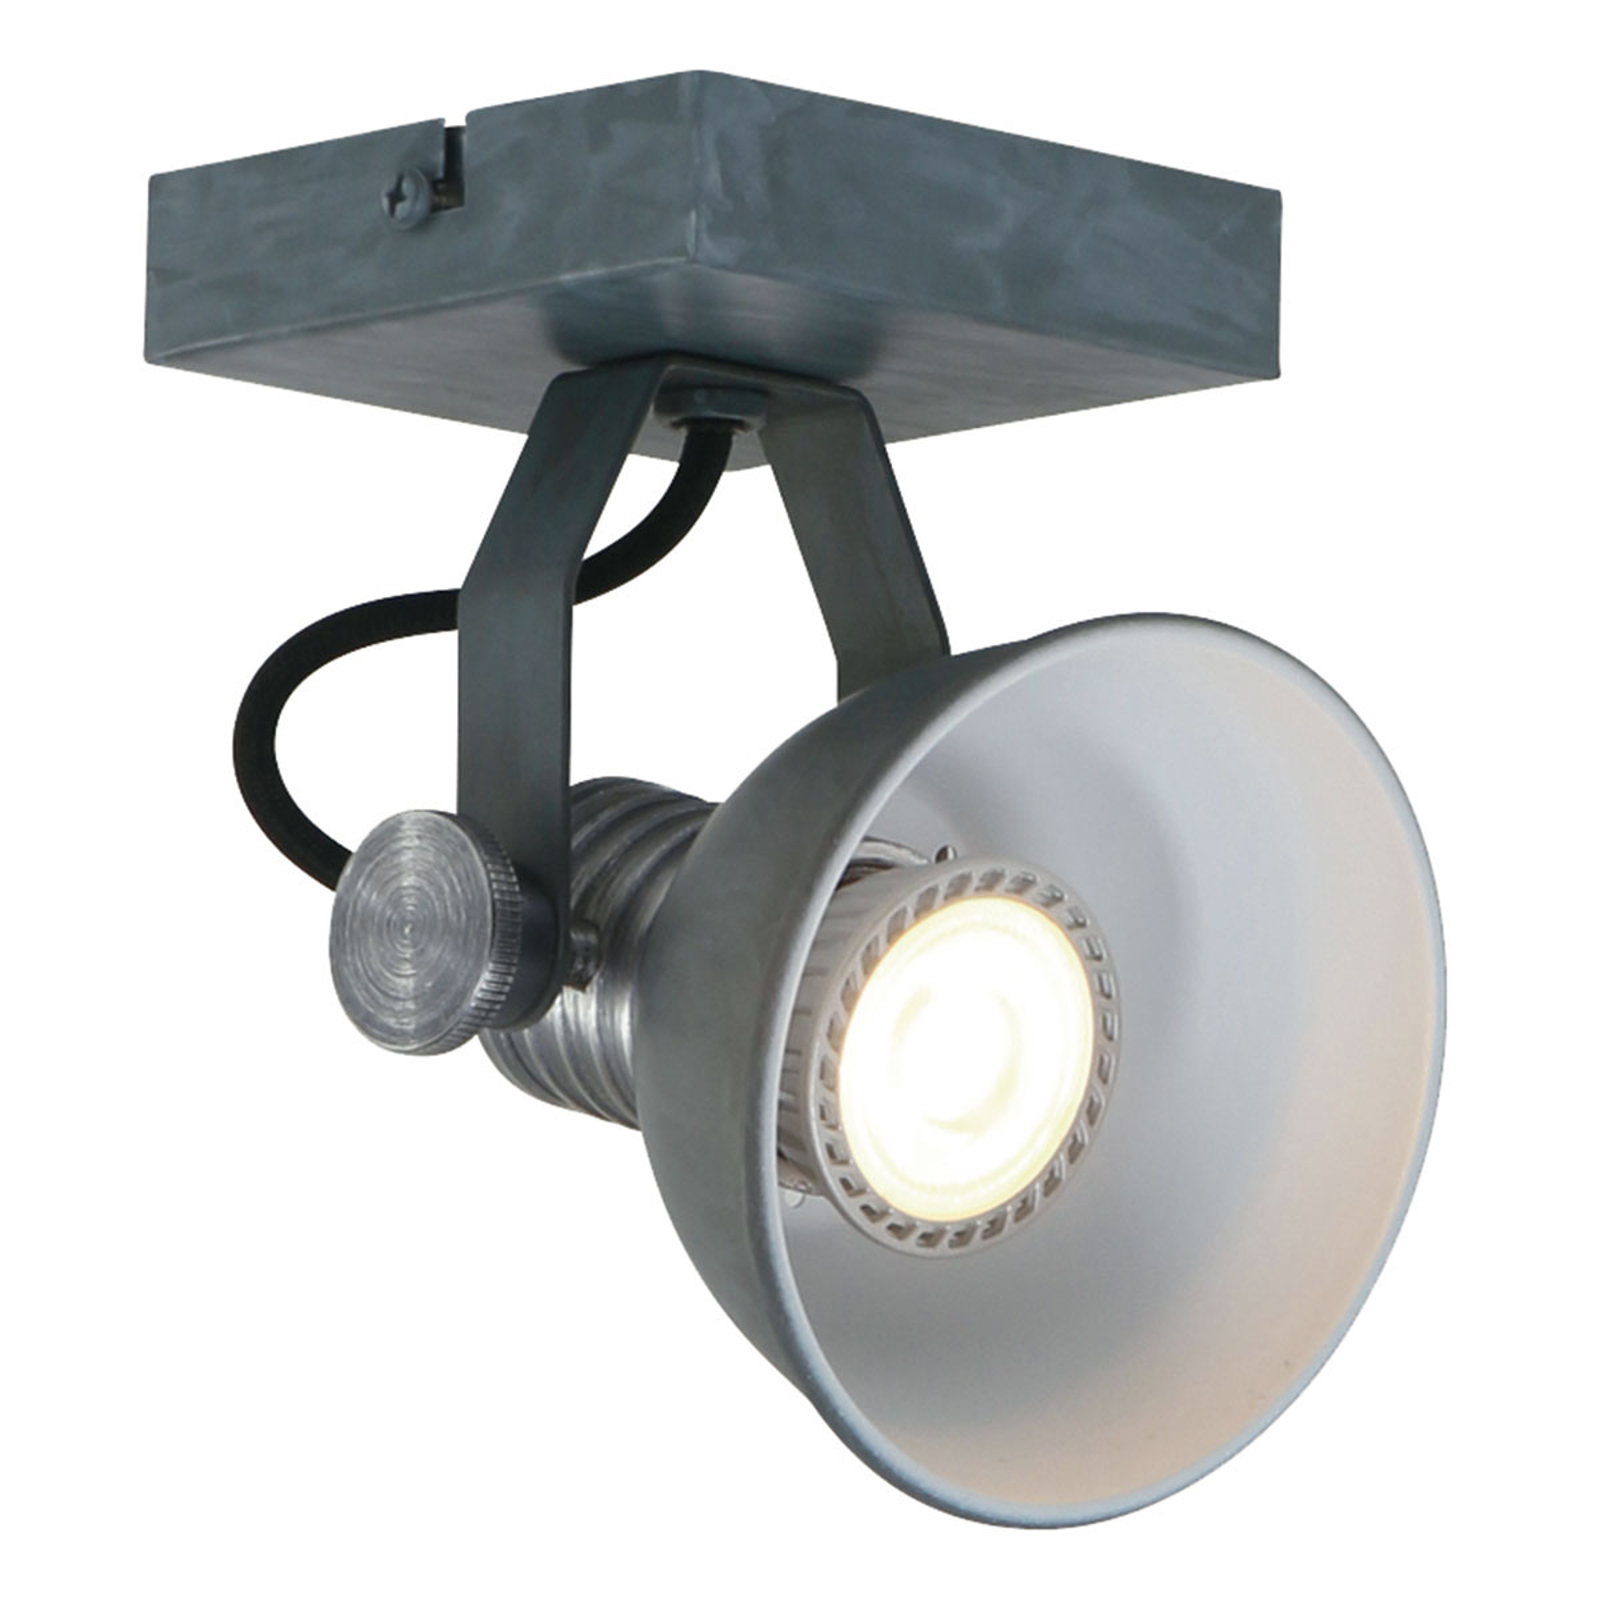 LED-Wandspot Brooklyn 1fl. grau